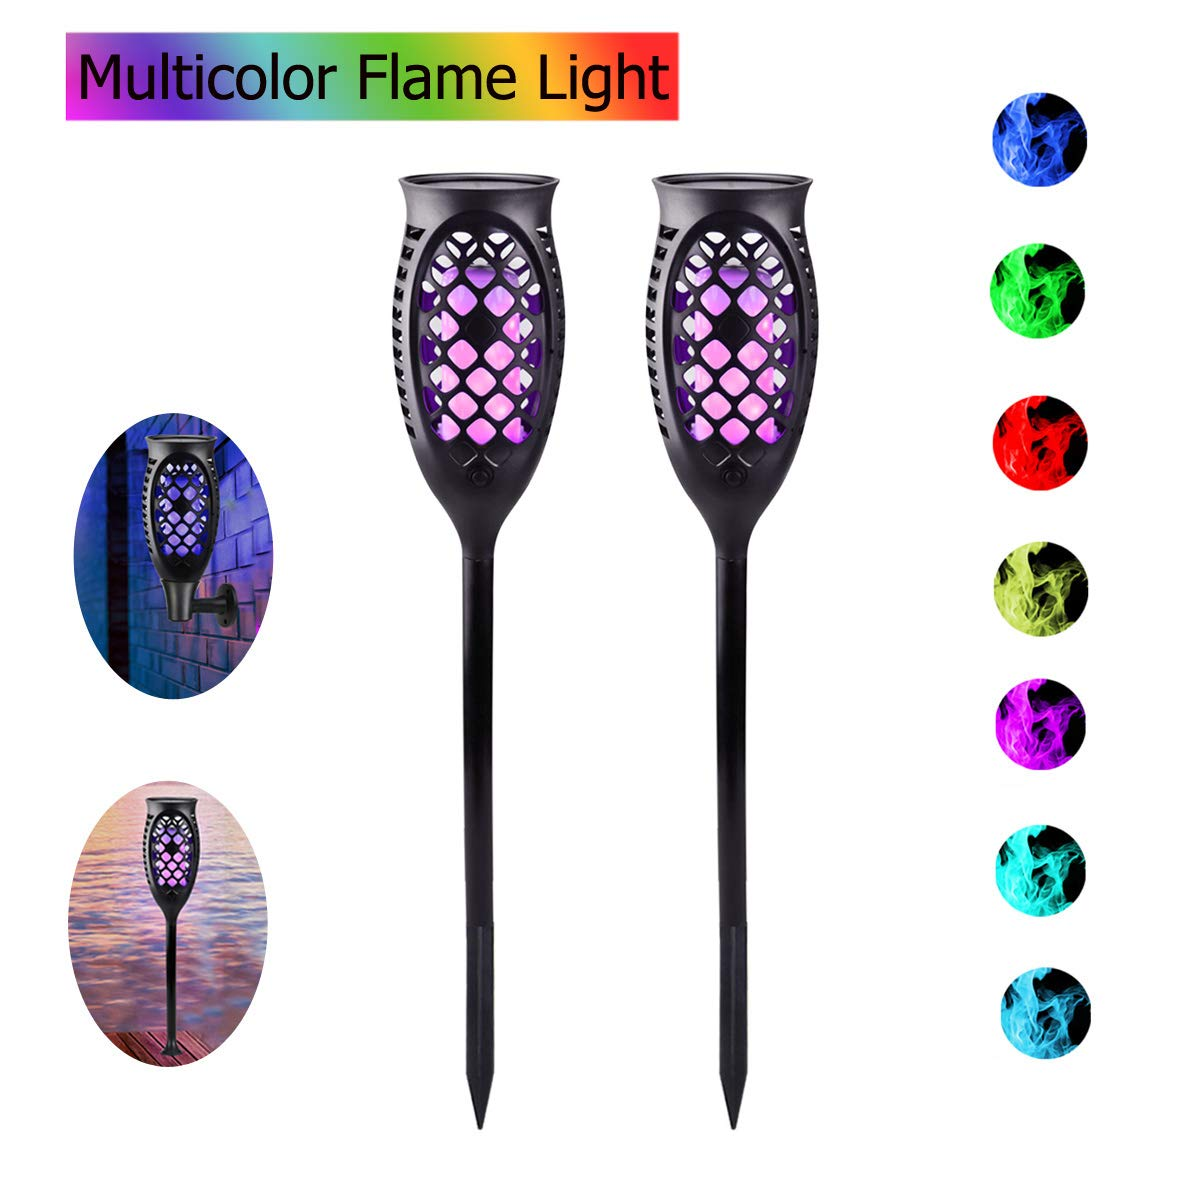 Outdoor Solar Garden Lights, Waterproof Multi-color Flame Flickering Torch Light with 3 Installation Ways Dusk to Dawn Landscape Lantern for Yard Wall Patio Garden (Fixed Color & Changing Color)-2